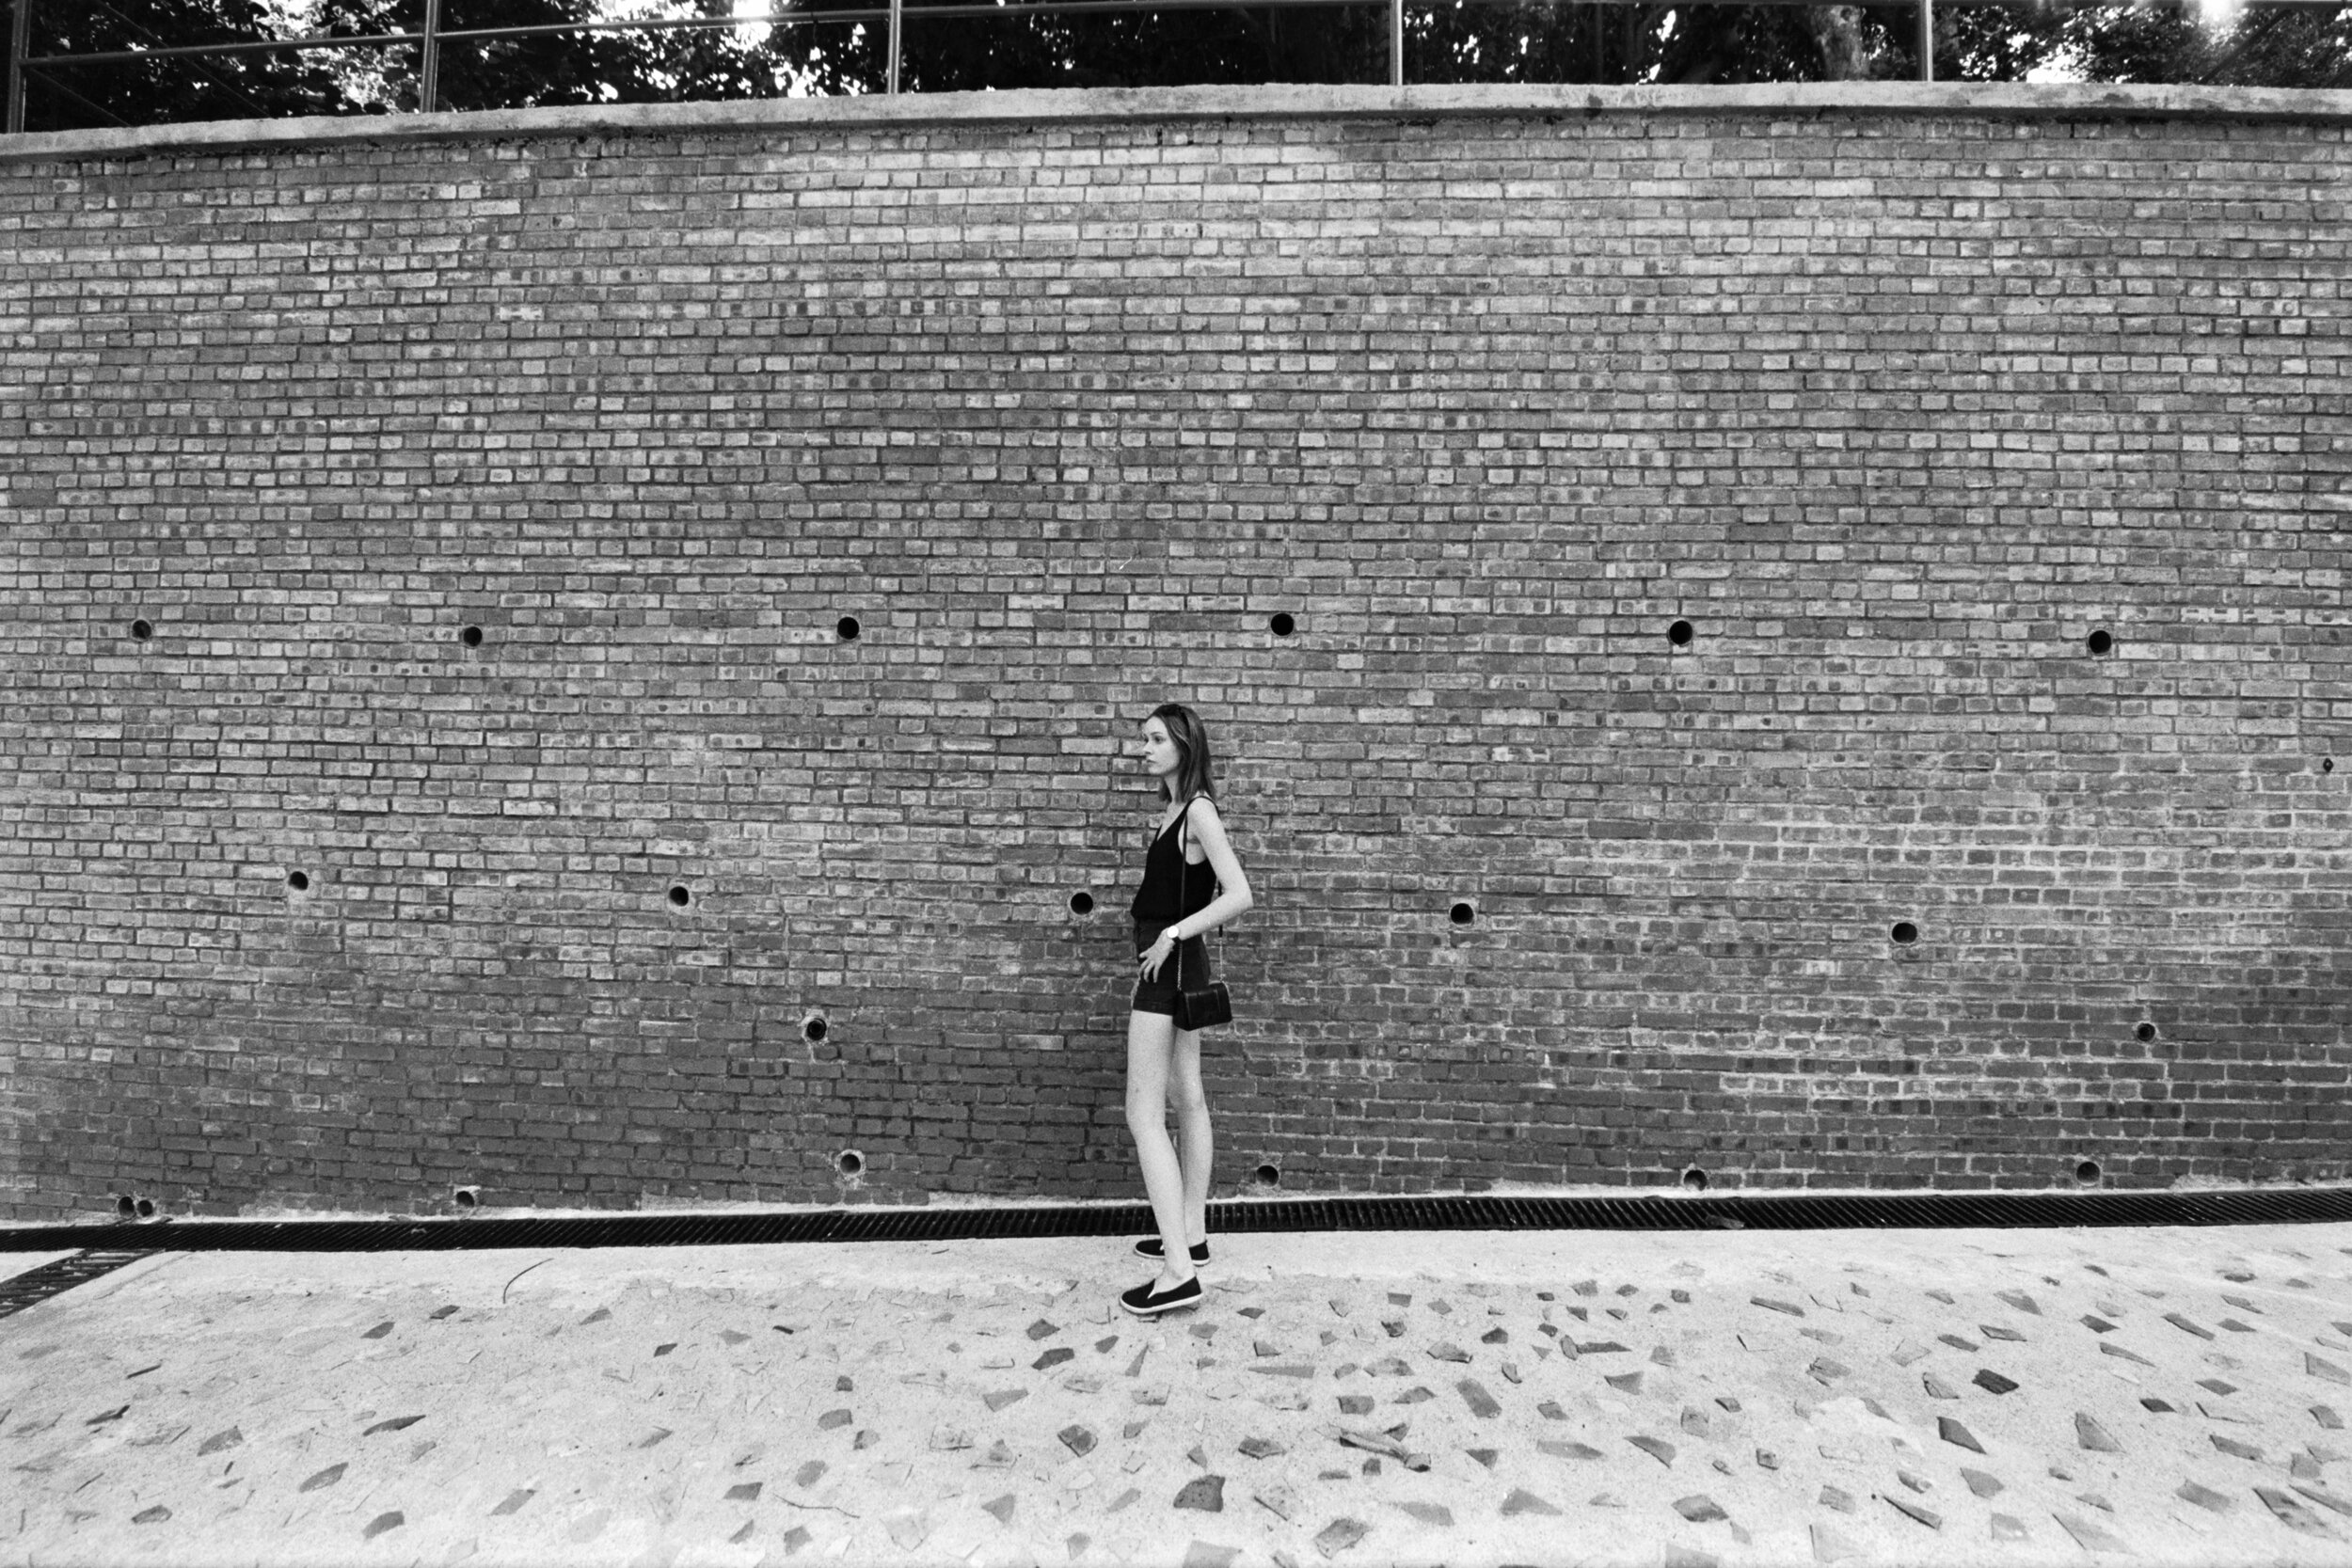 Ilford Delta 400 @ 14mm Focal Length